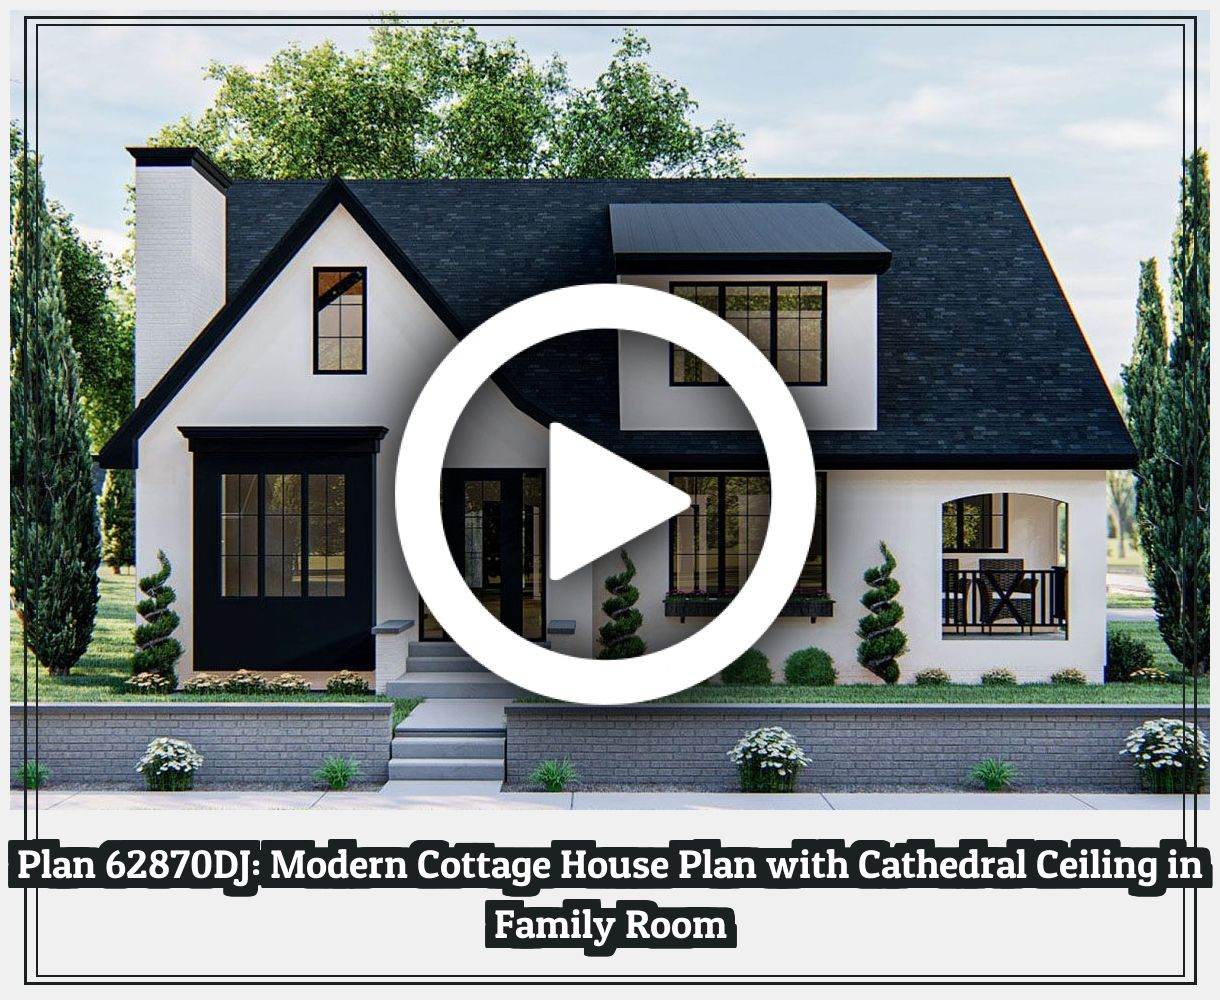 Modern House Design 56289 Modern Cottage House Plan With Cathedral Ceiling In Family Room 62870dj A Cottage House Plans Modern Cottage Modern Cottage Style